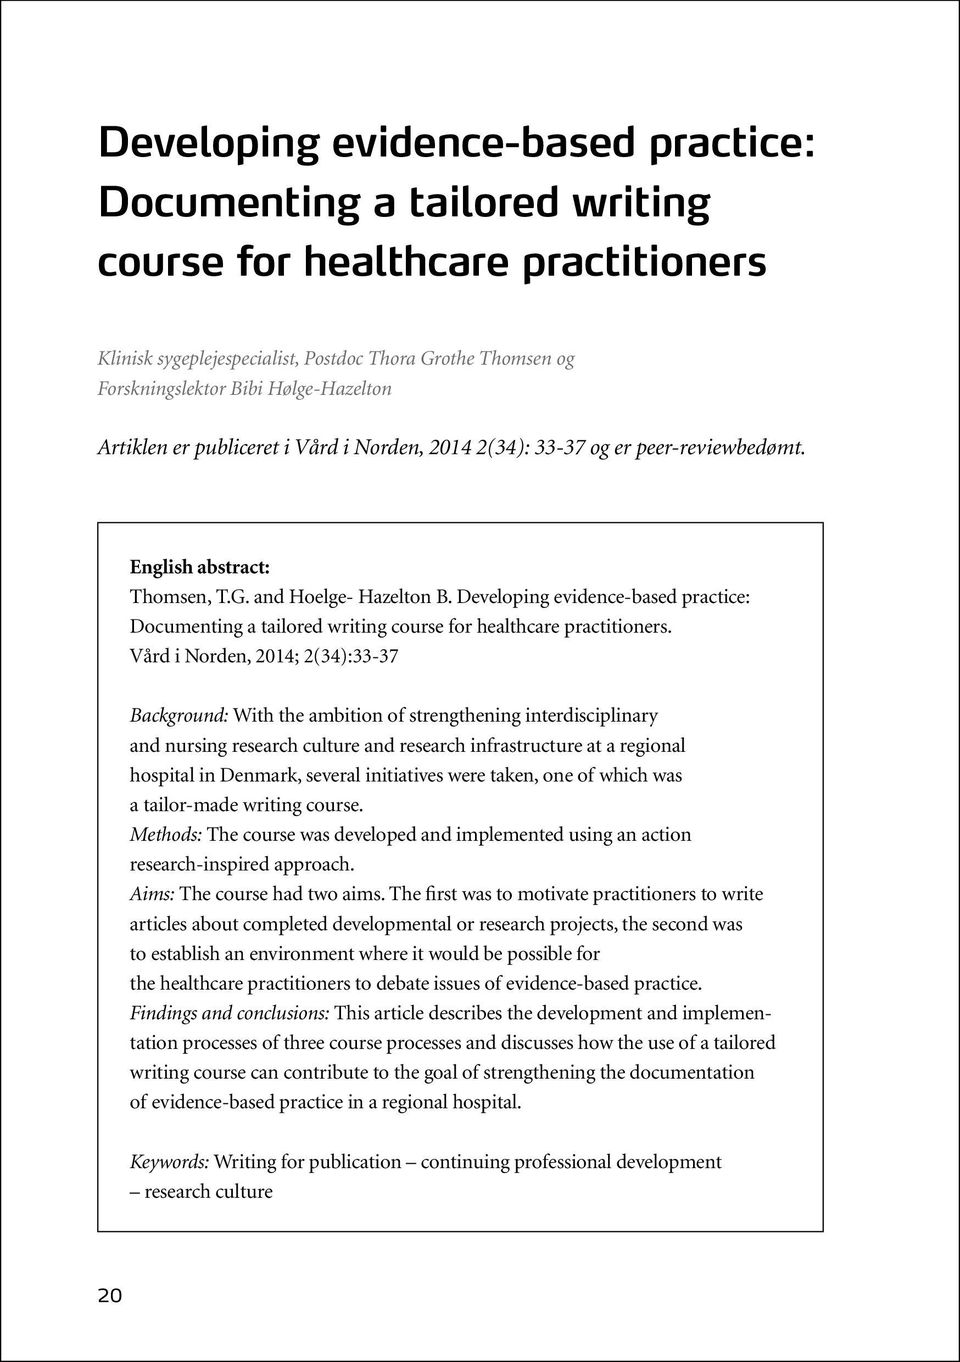 Developing evidence-based practice: Documenting a tailored writing course for healthcare practitioners.